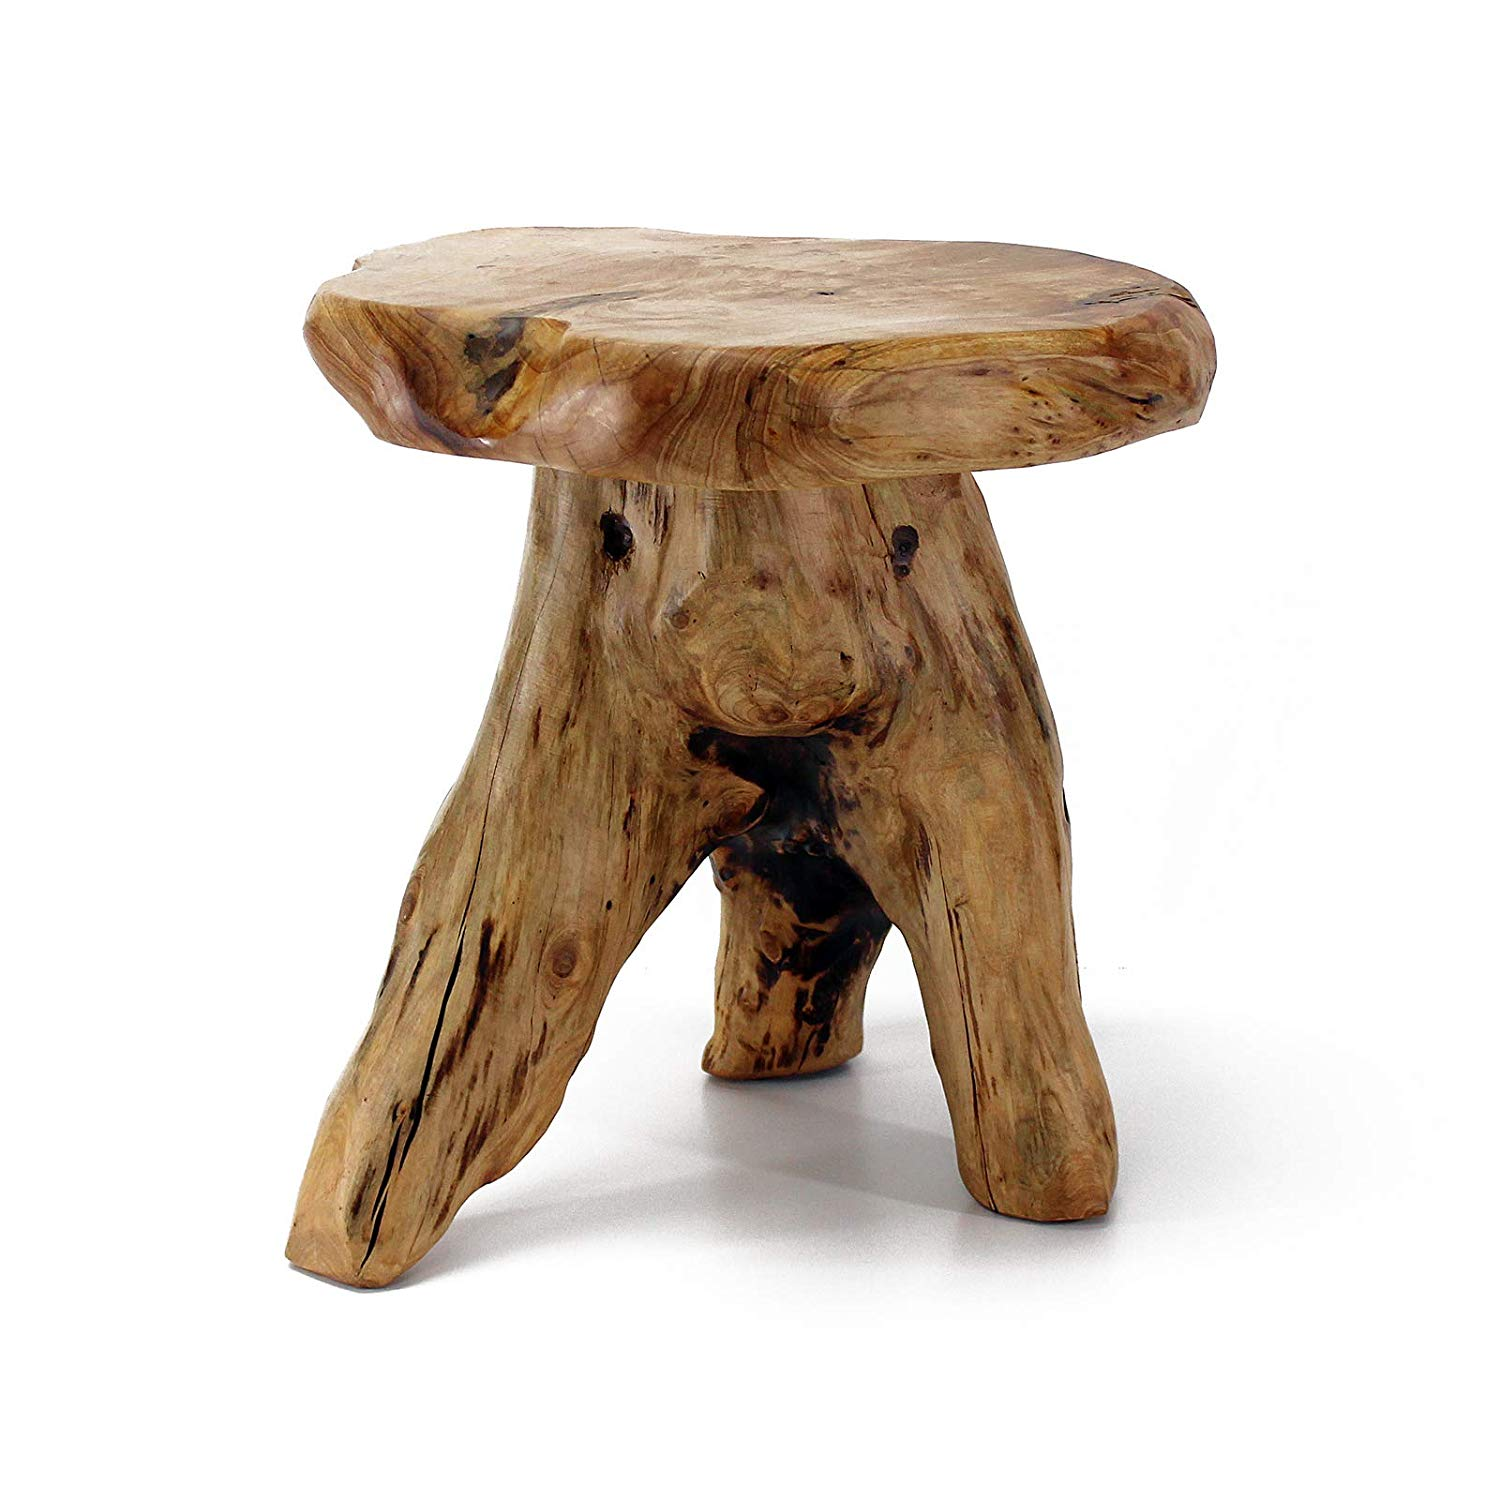 welland tree stump stool live edge natural side wood slab accent table plant stand nightstand mushroom tall garden outdoor black half moon battery powered standard lamp pier one